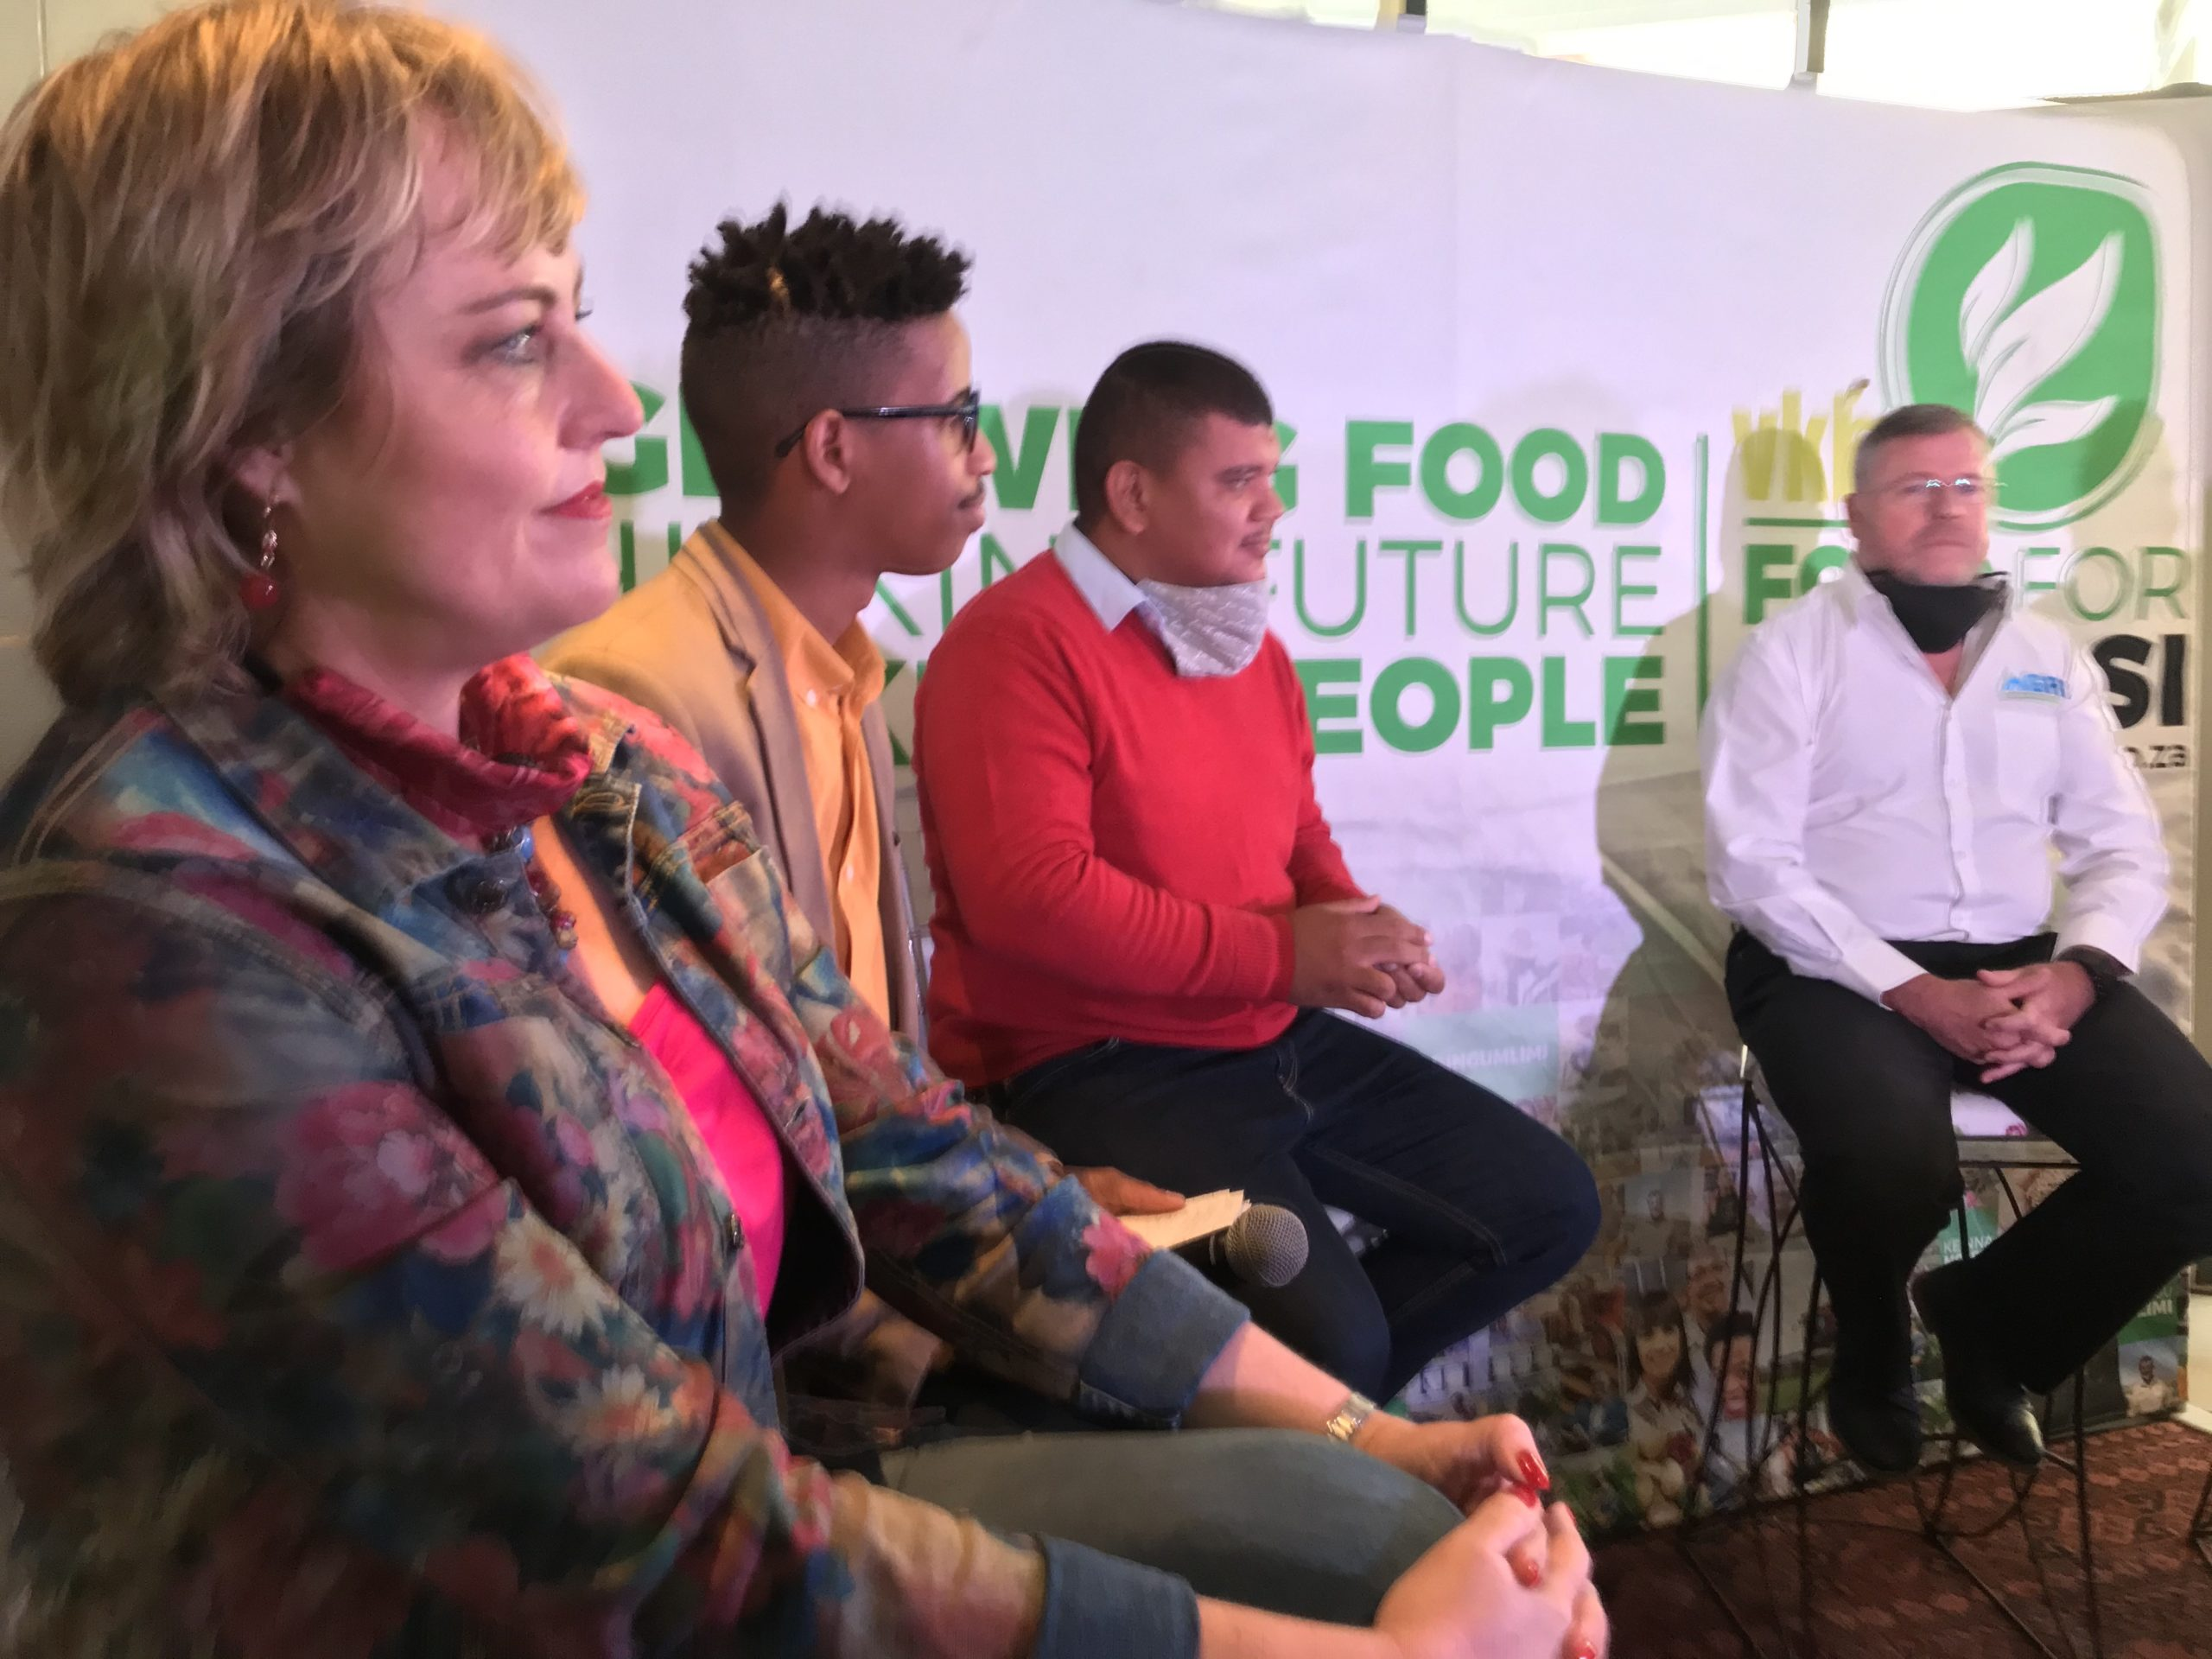 Cotton SA's Tanya Aucamp, Duncan Masiwa from Food For Mzansi and Breyton Milford from Agri-Expo. Photo: Food For Mzansi